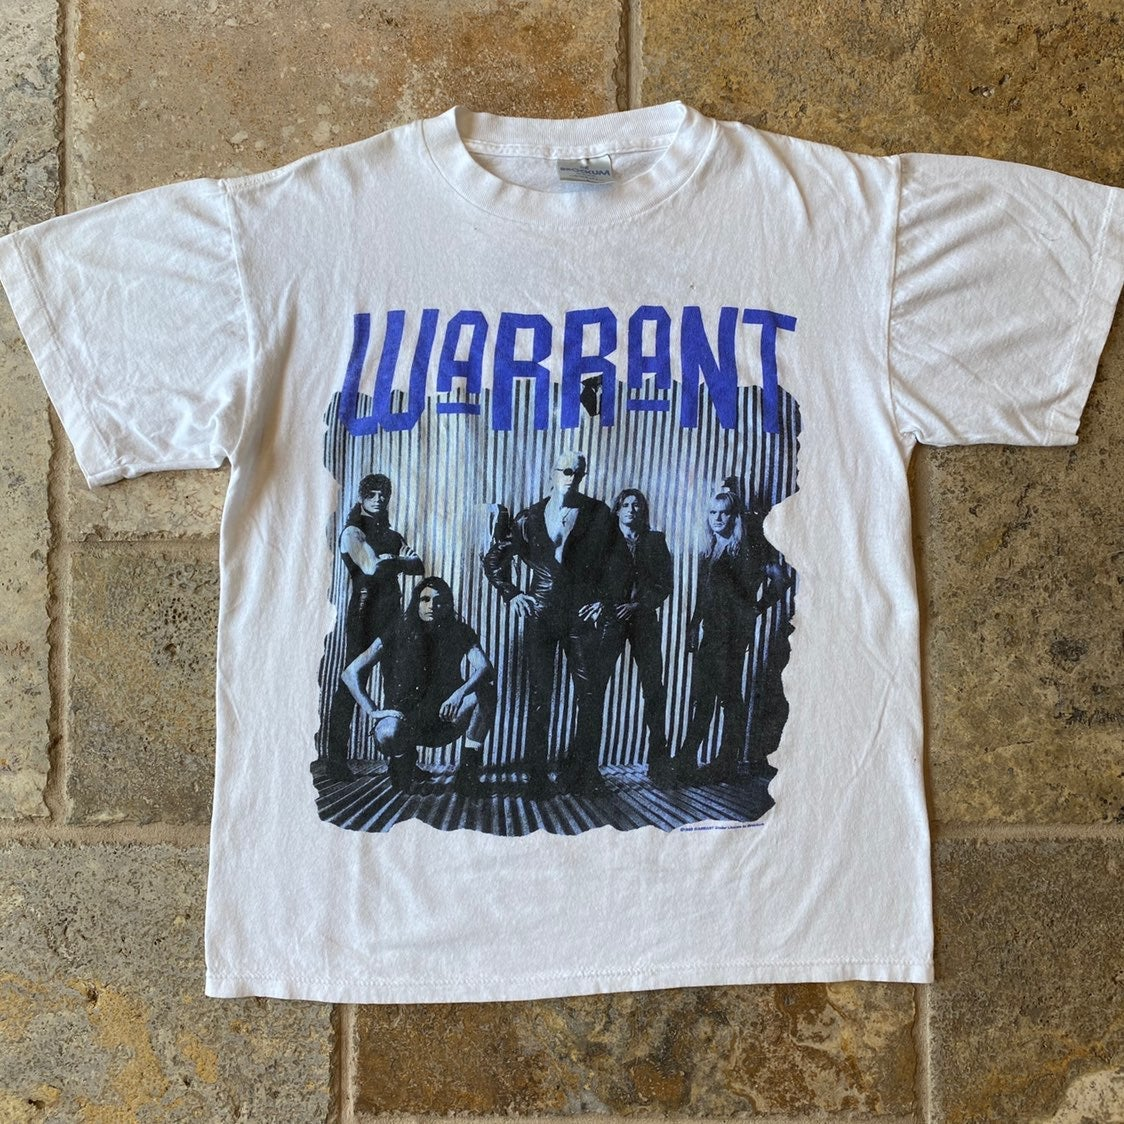 1992 Brockum Warrant Concert Band Tee